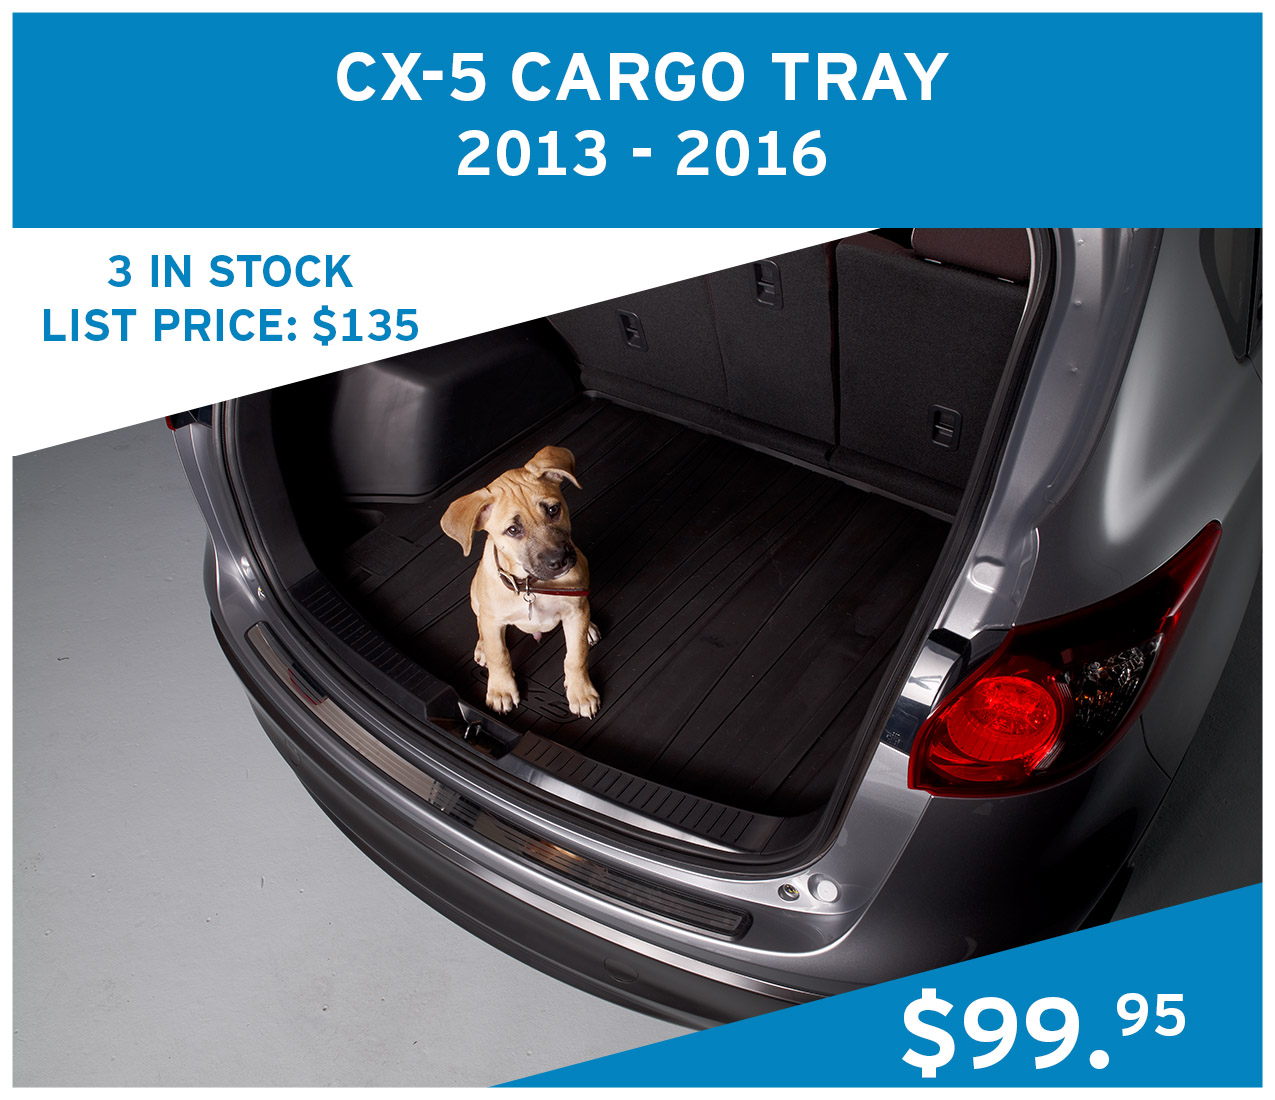 5x CX-5 Cargo Trays for 2013 - 2016 vehicles at $99.95